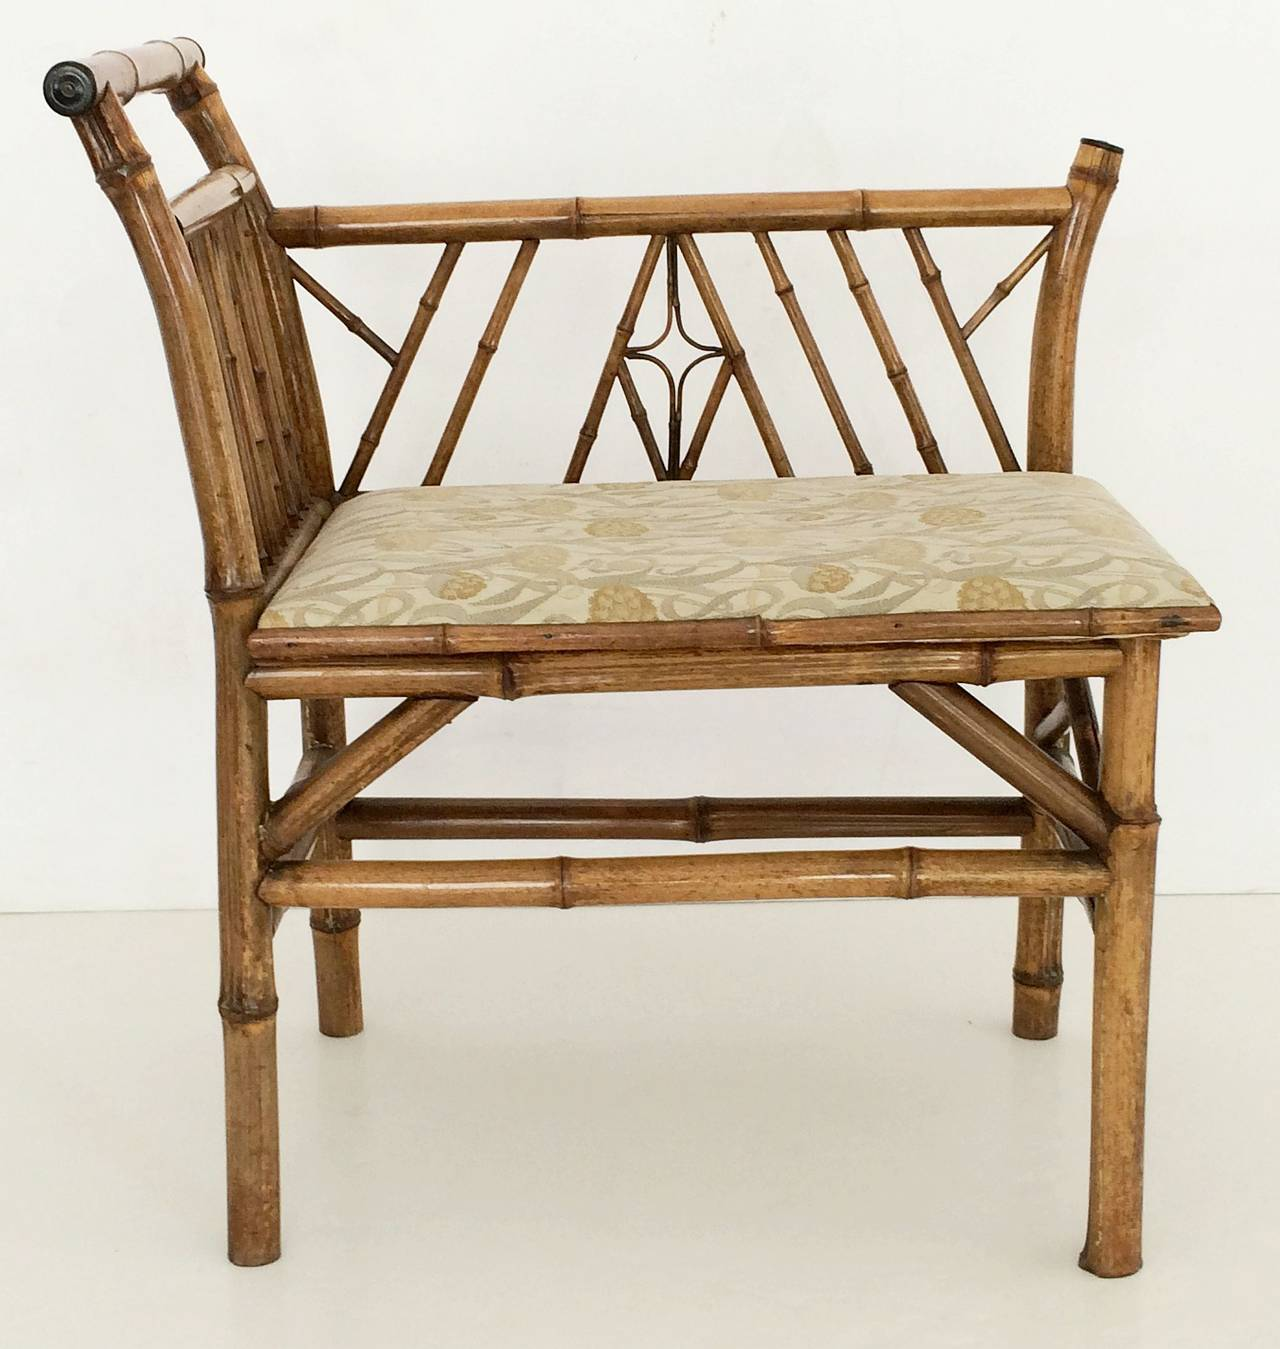 A handsome English bamboo bench seat from the Aesthetic Movement period, featuring a slatted back and side of bamboo with an upholstered seat, on sturdy bamboo stretcher.